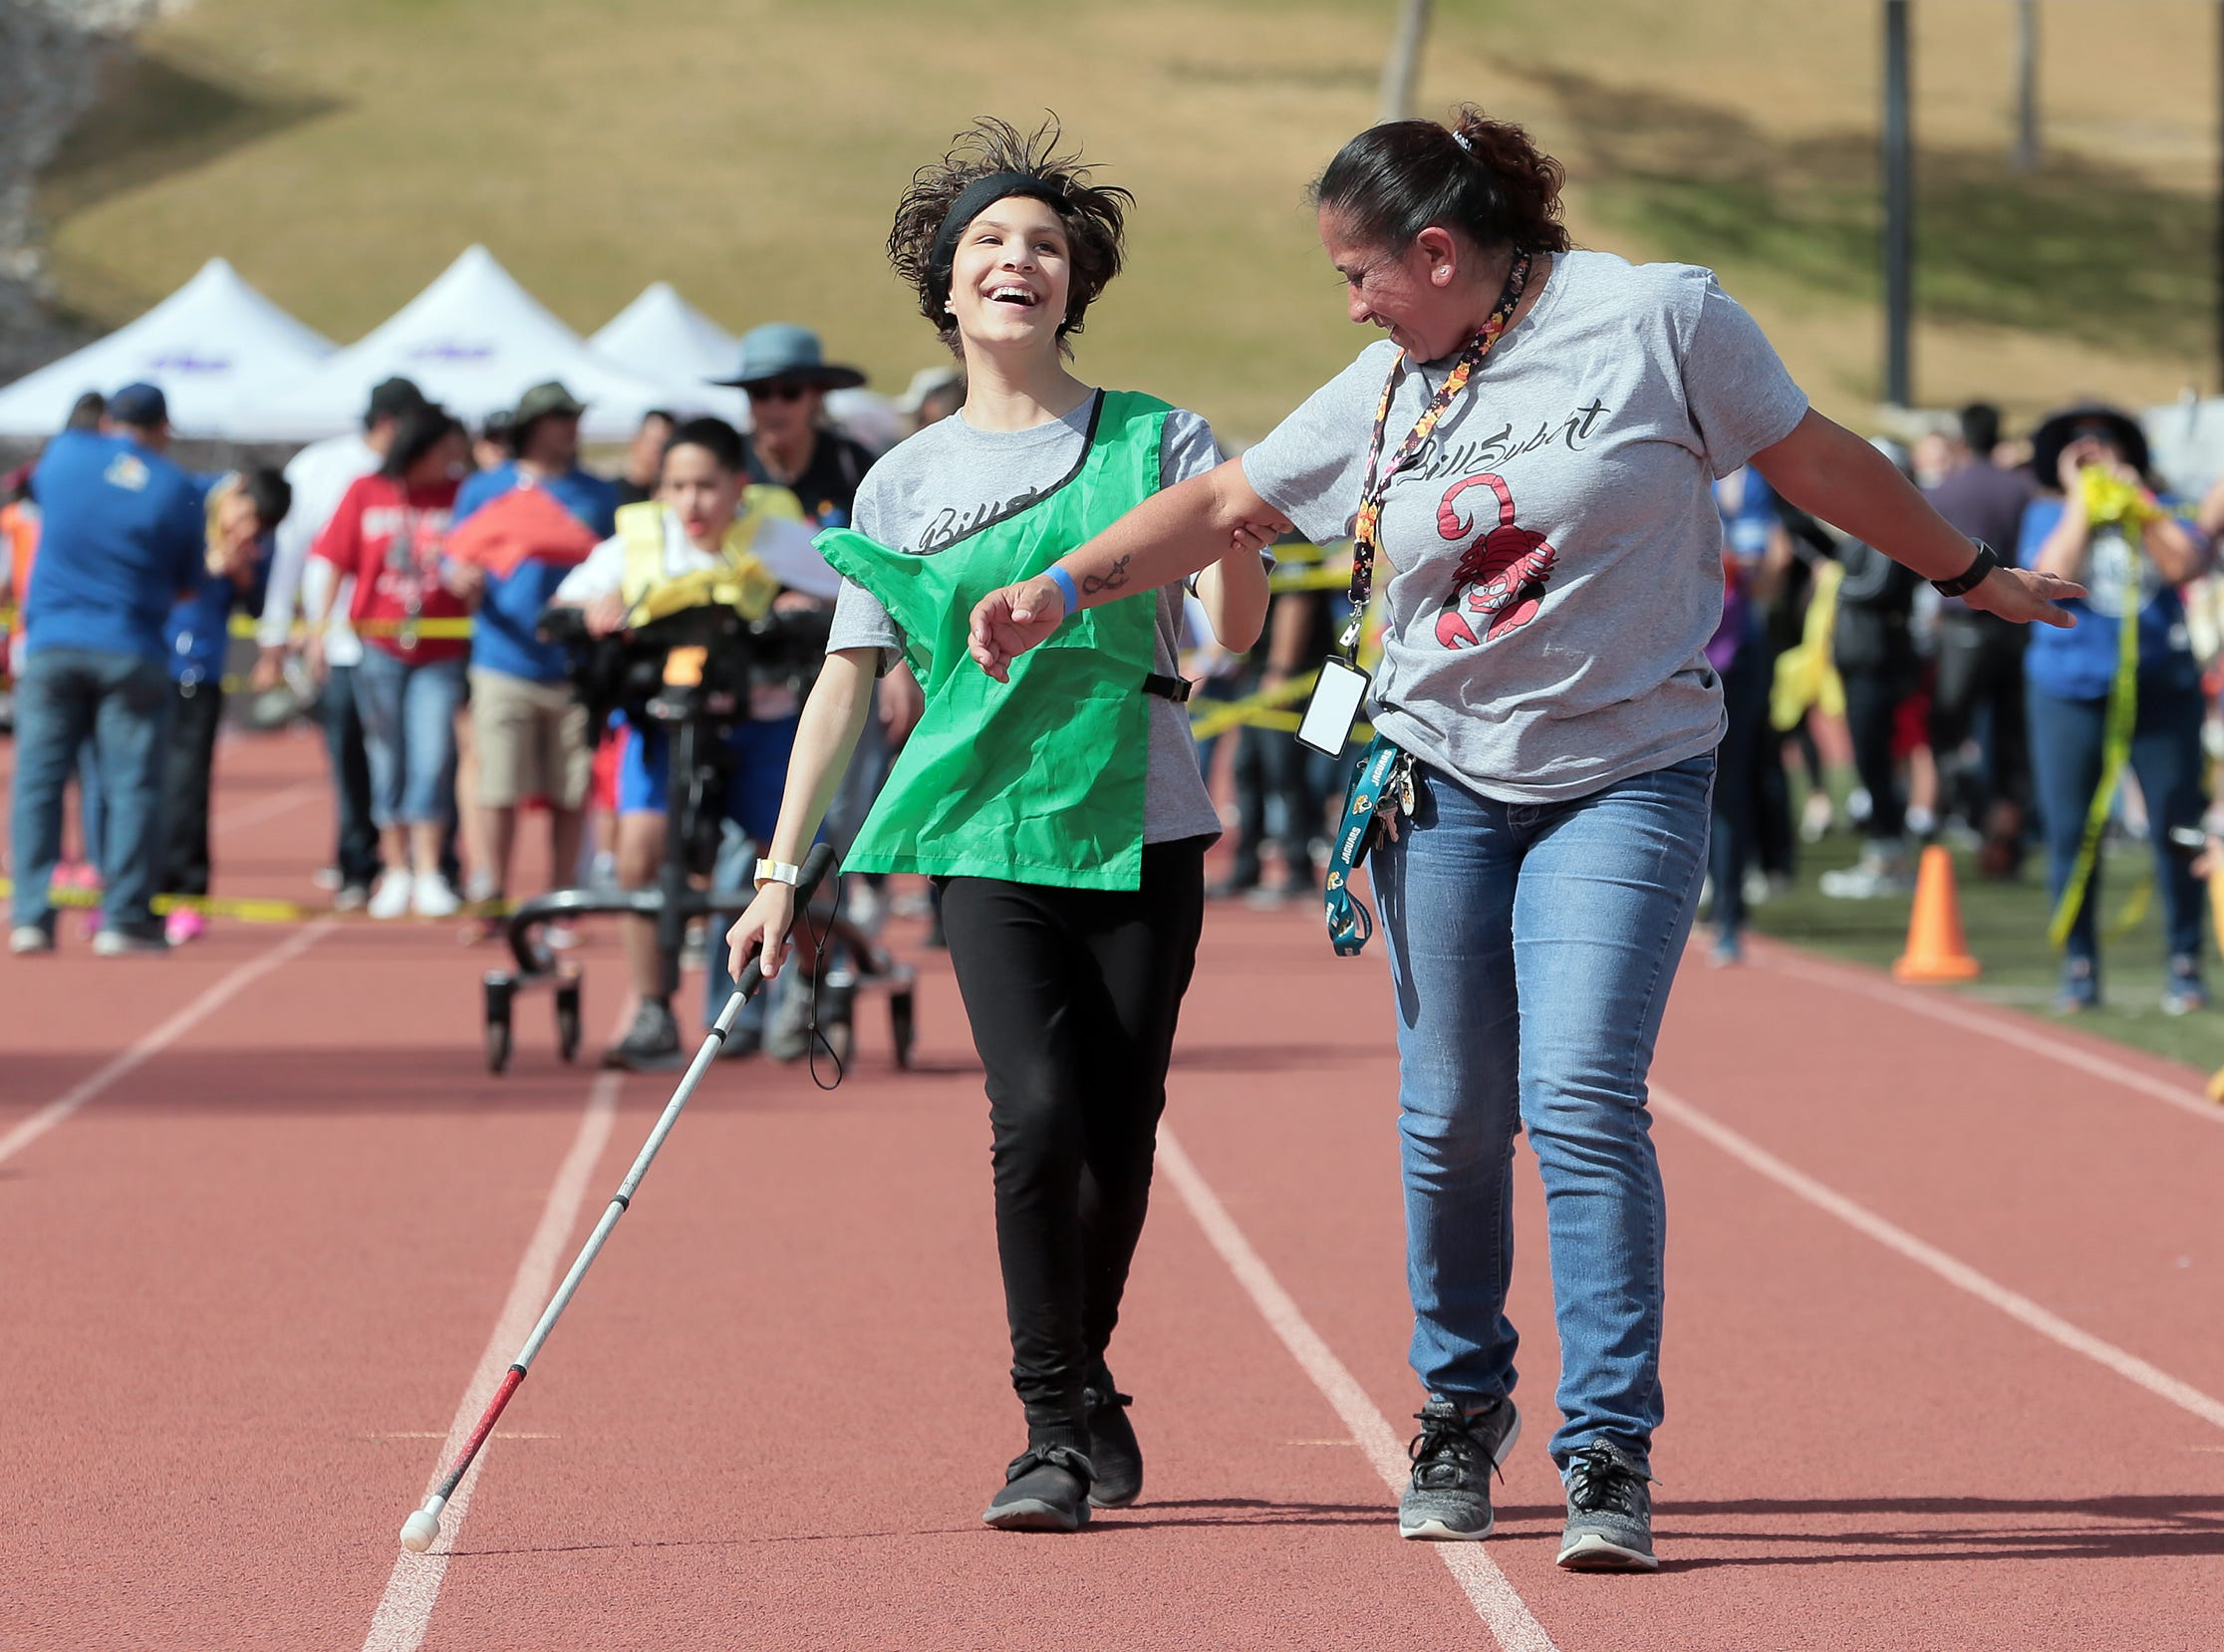 Over 1,000 students with special needs participated in the Socorro Independent School District's annual Spring Games. Students competed in a variety of track events Wednesday, April 3, 2019.